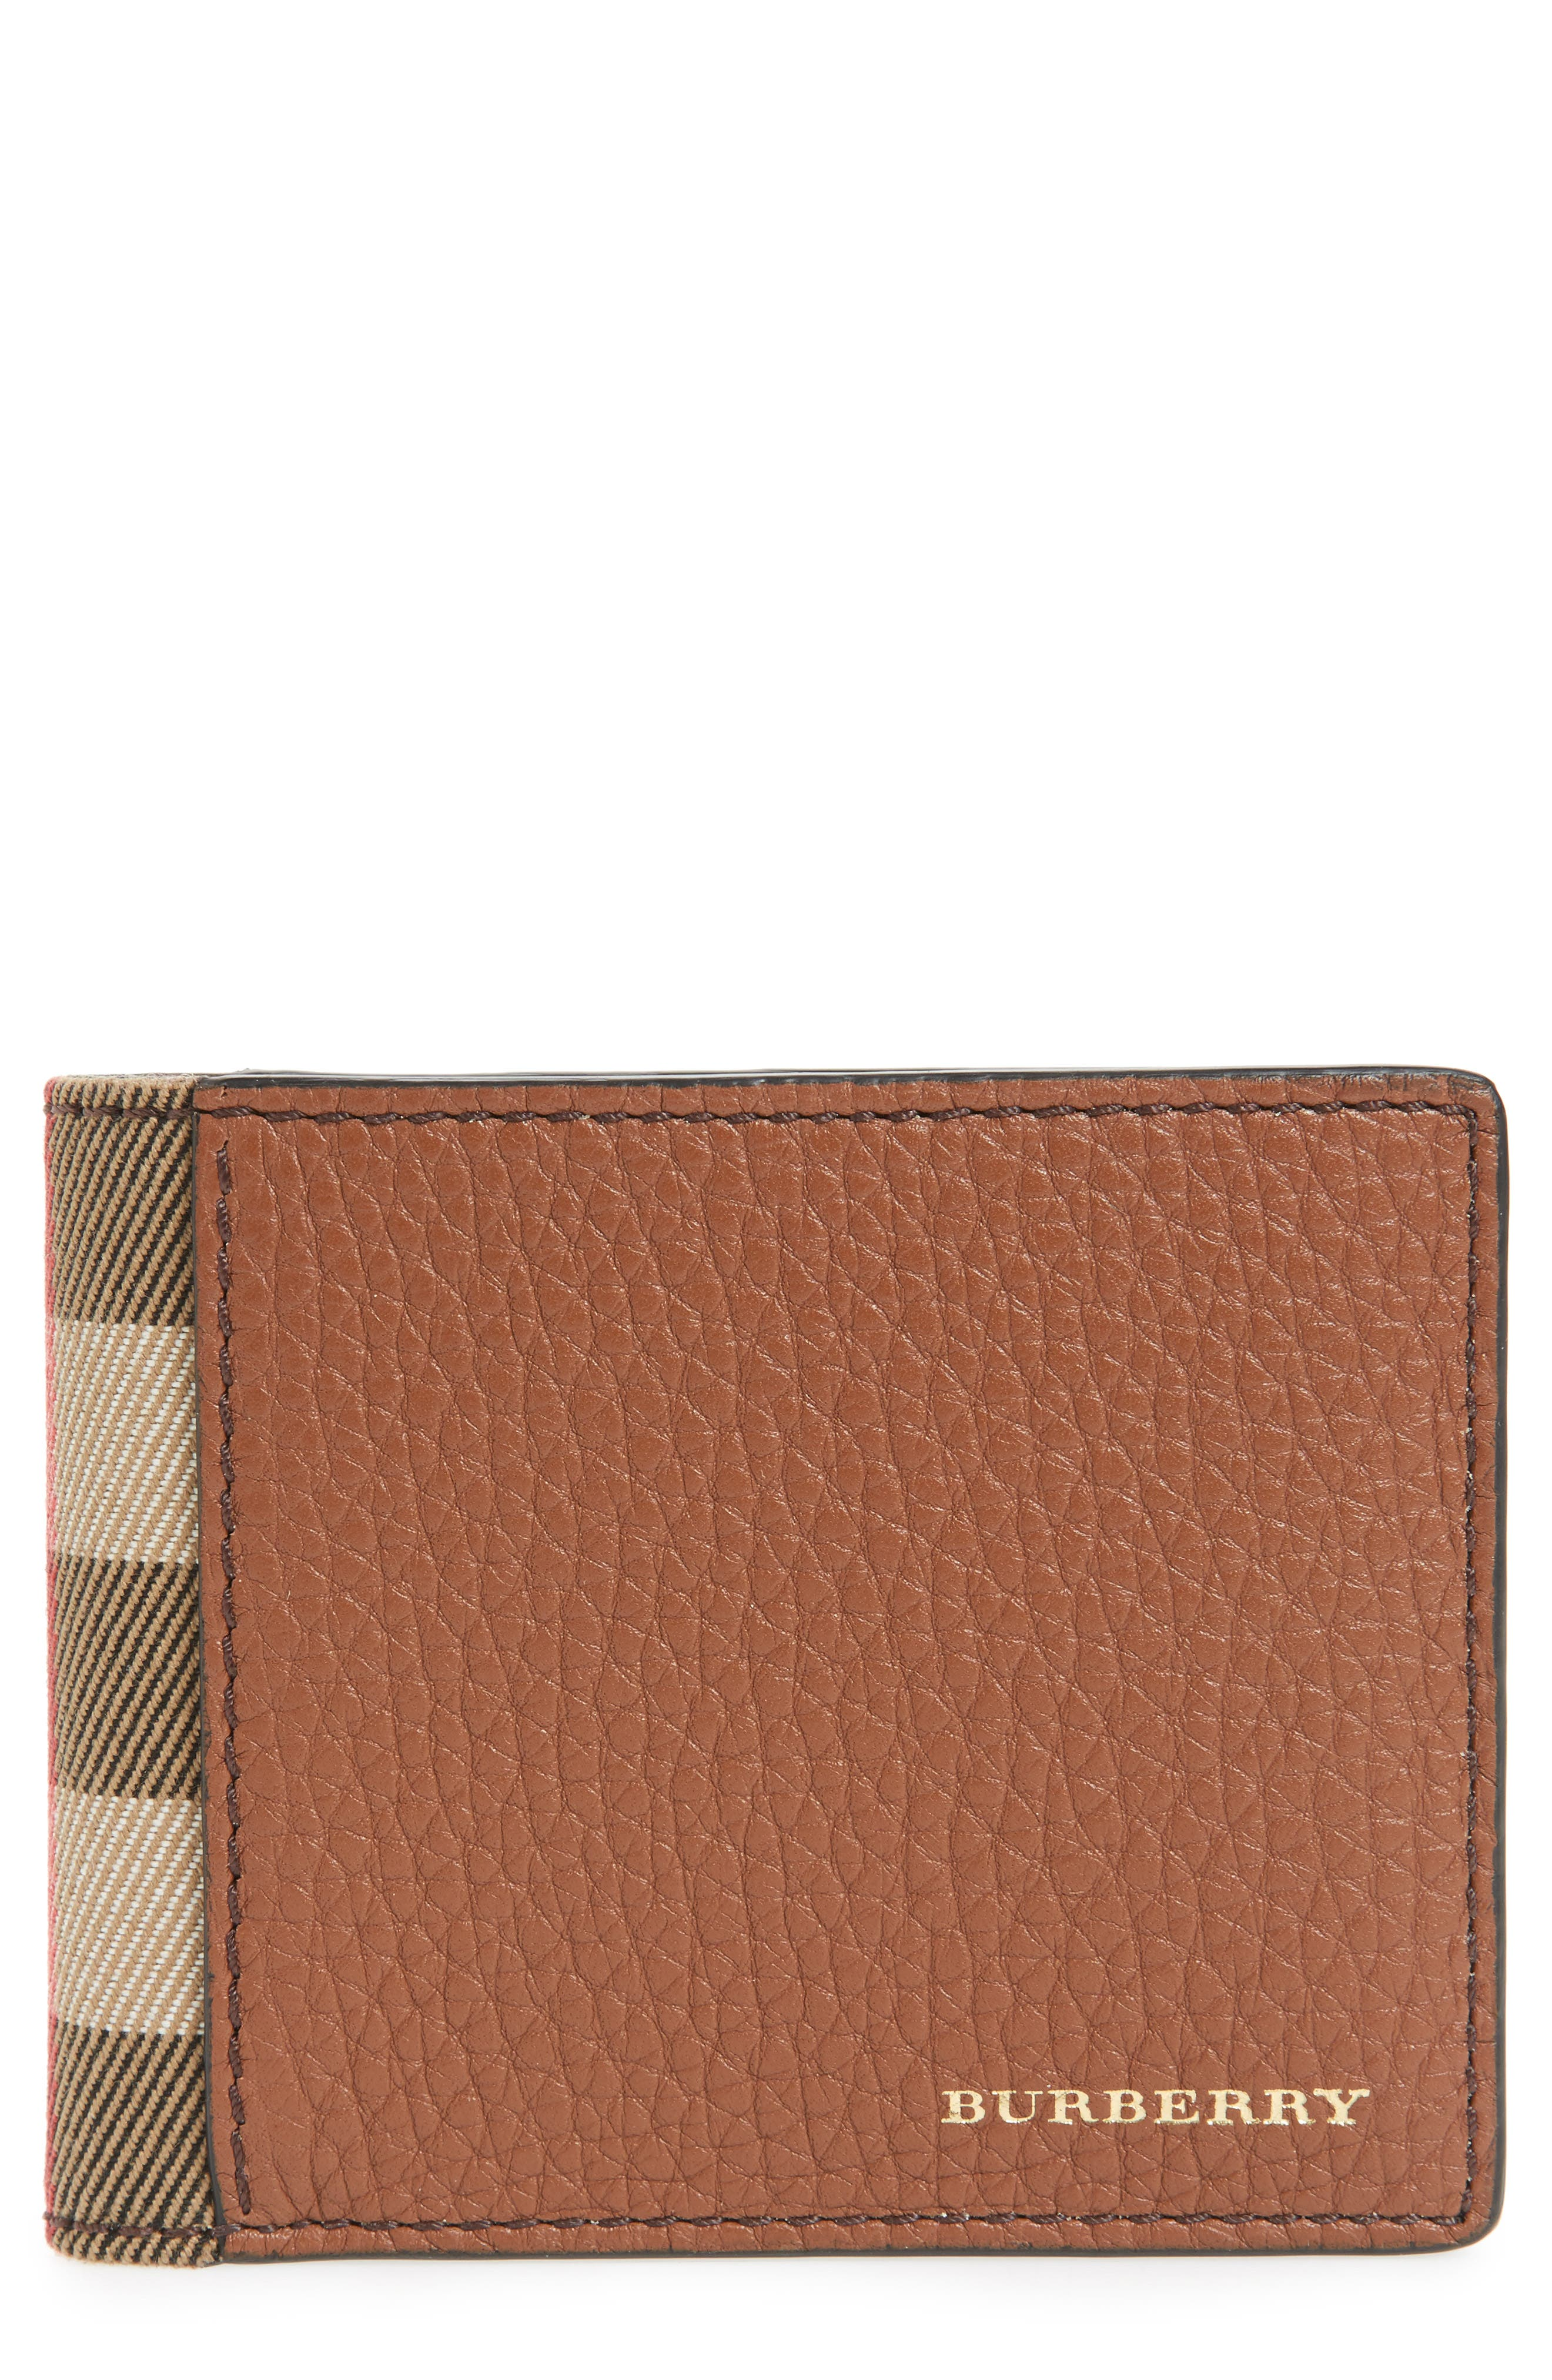 Leather Wallet,                         Main,                         color, Chestnut Brown